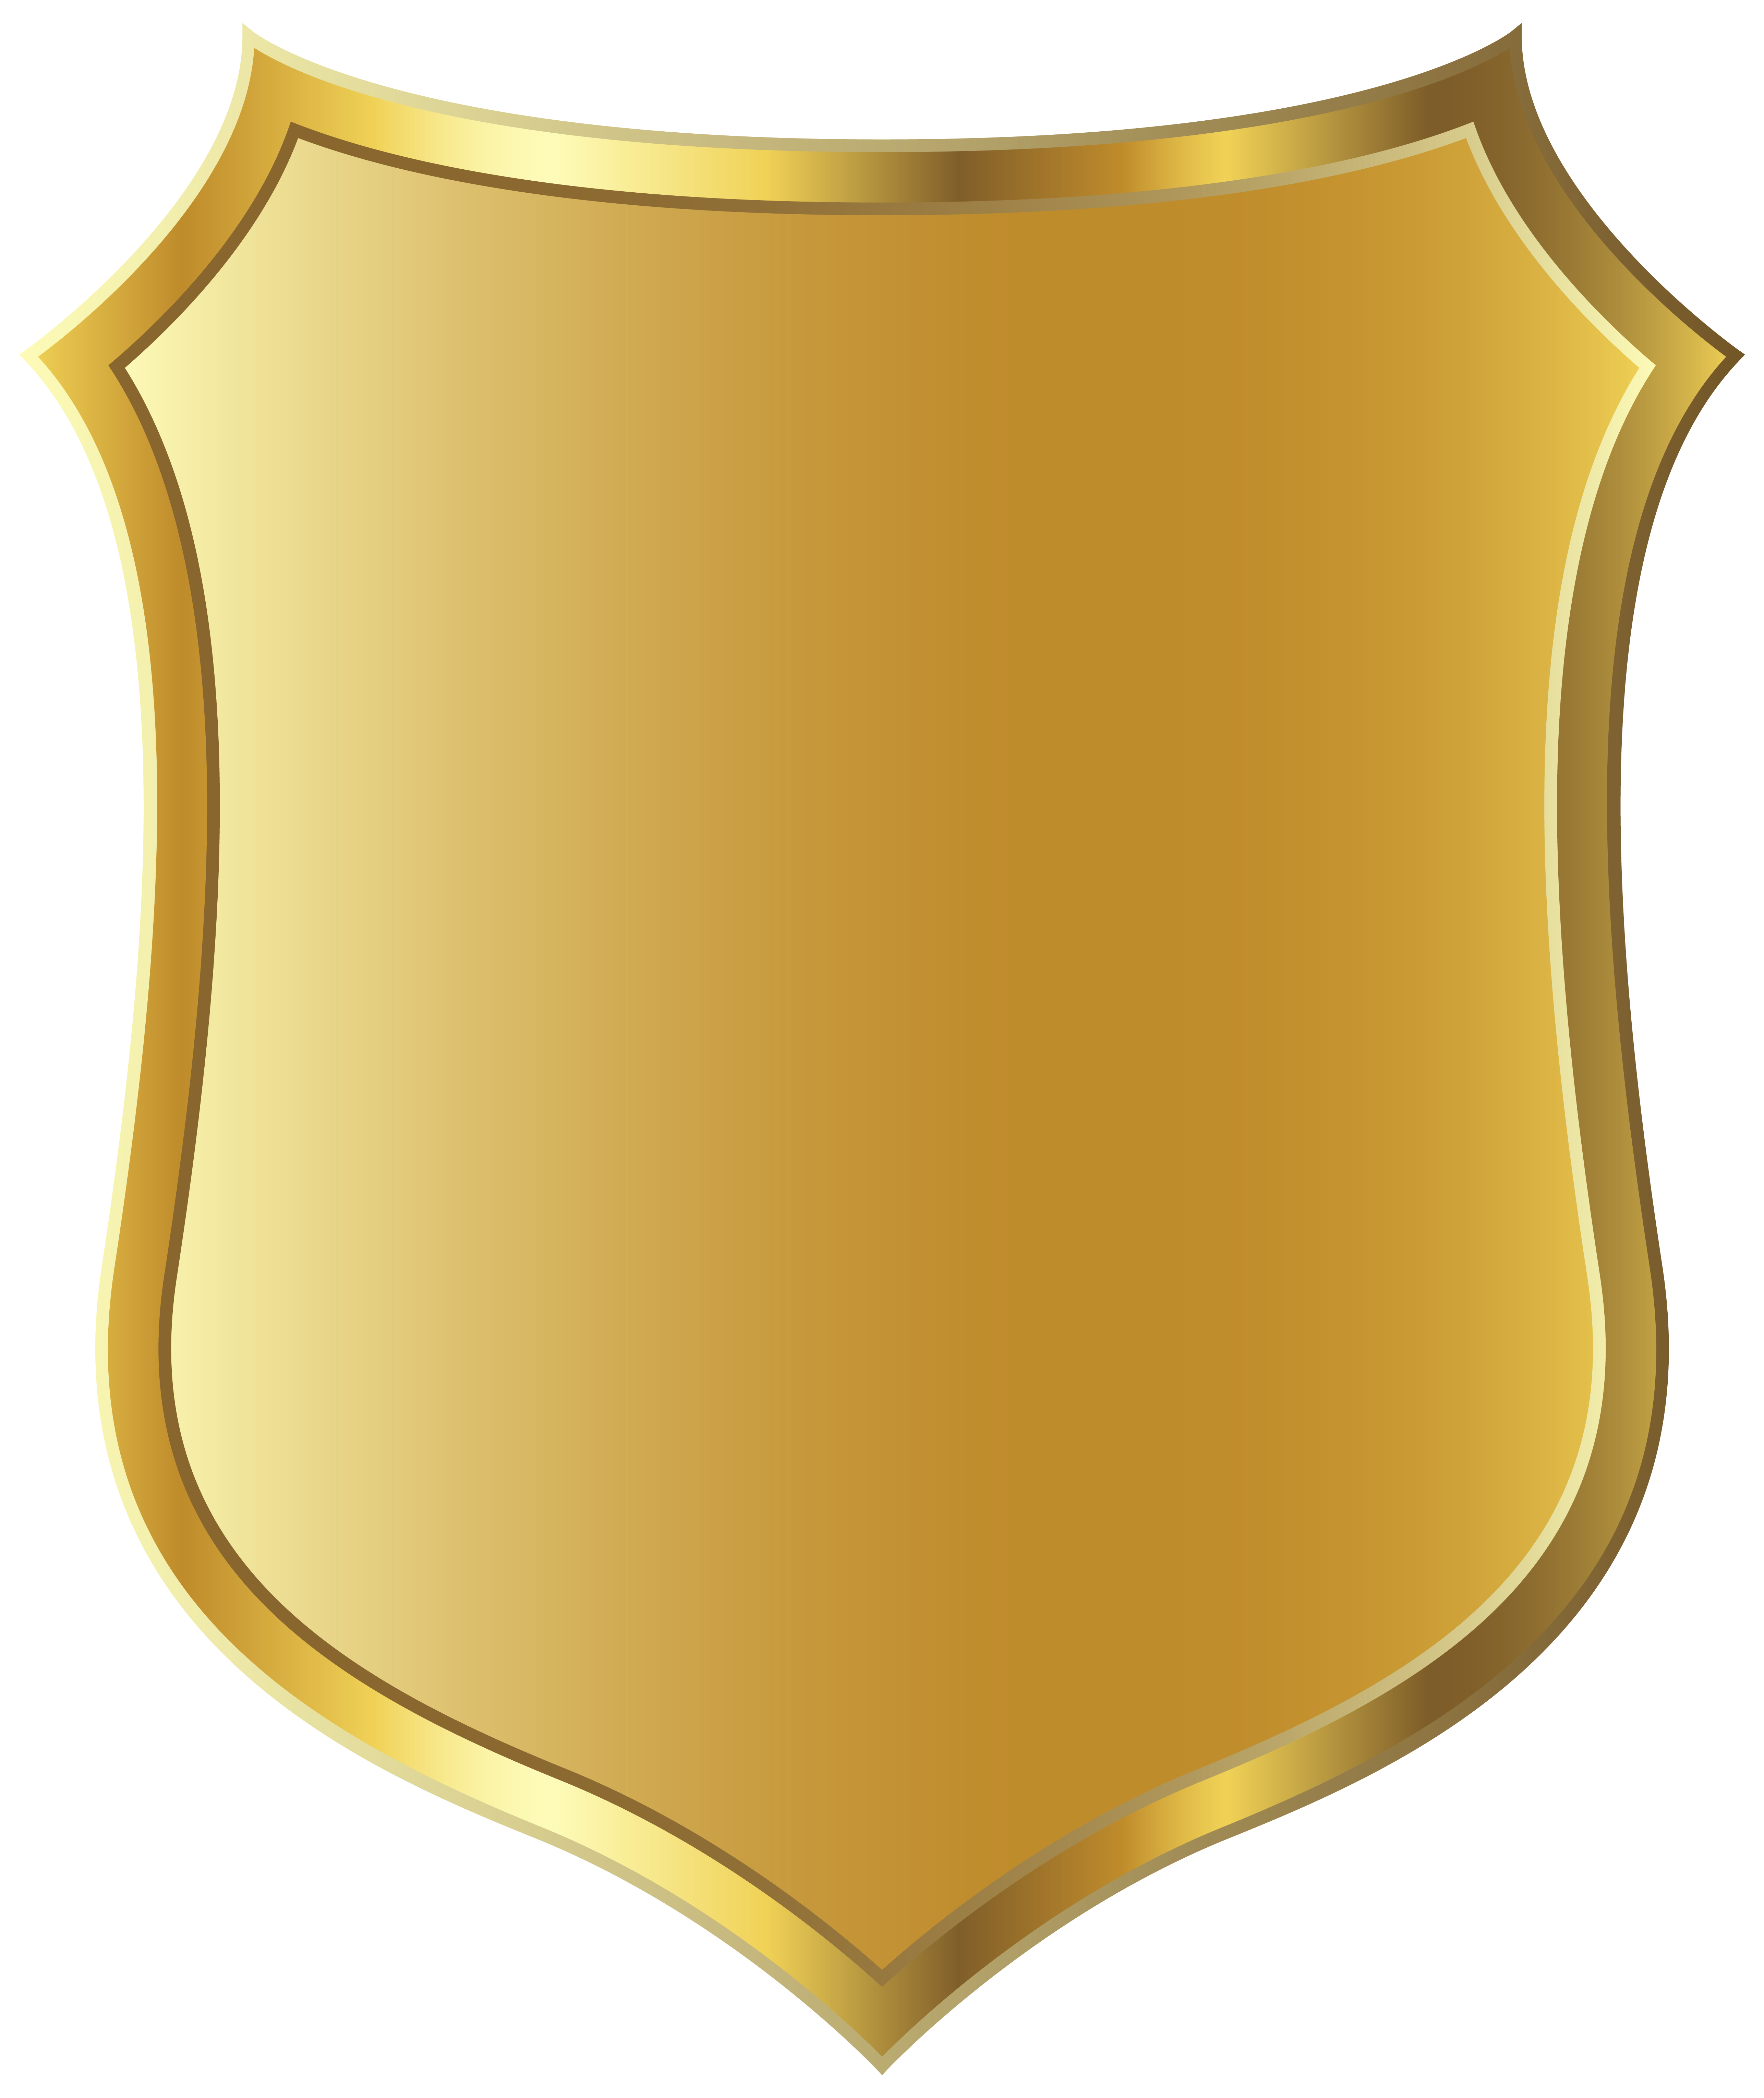 Gold Badge Template Clipart Picture Gallery Yopriceville High Quality Images And Transparent Png Free Clipart Desain Logo Bingkai Foto Bingkai